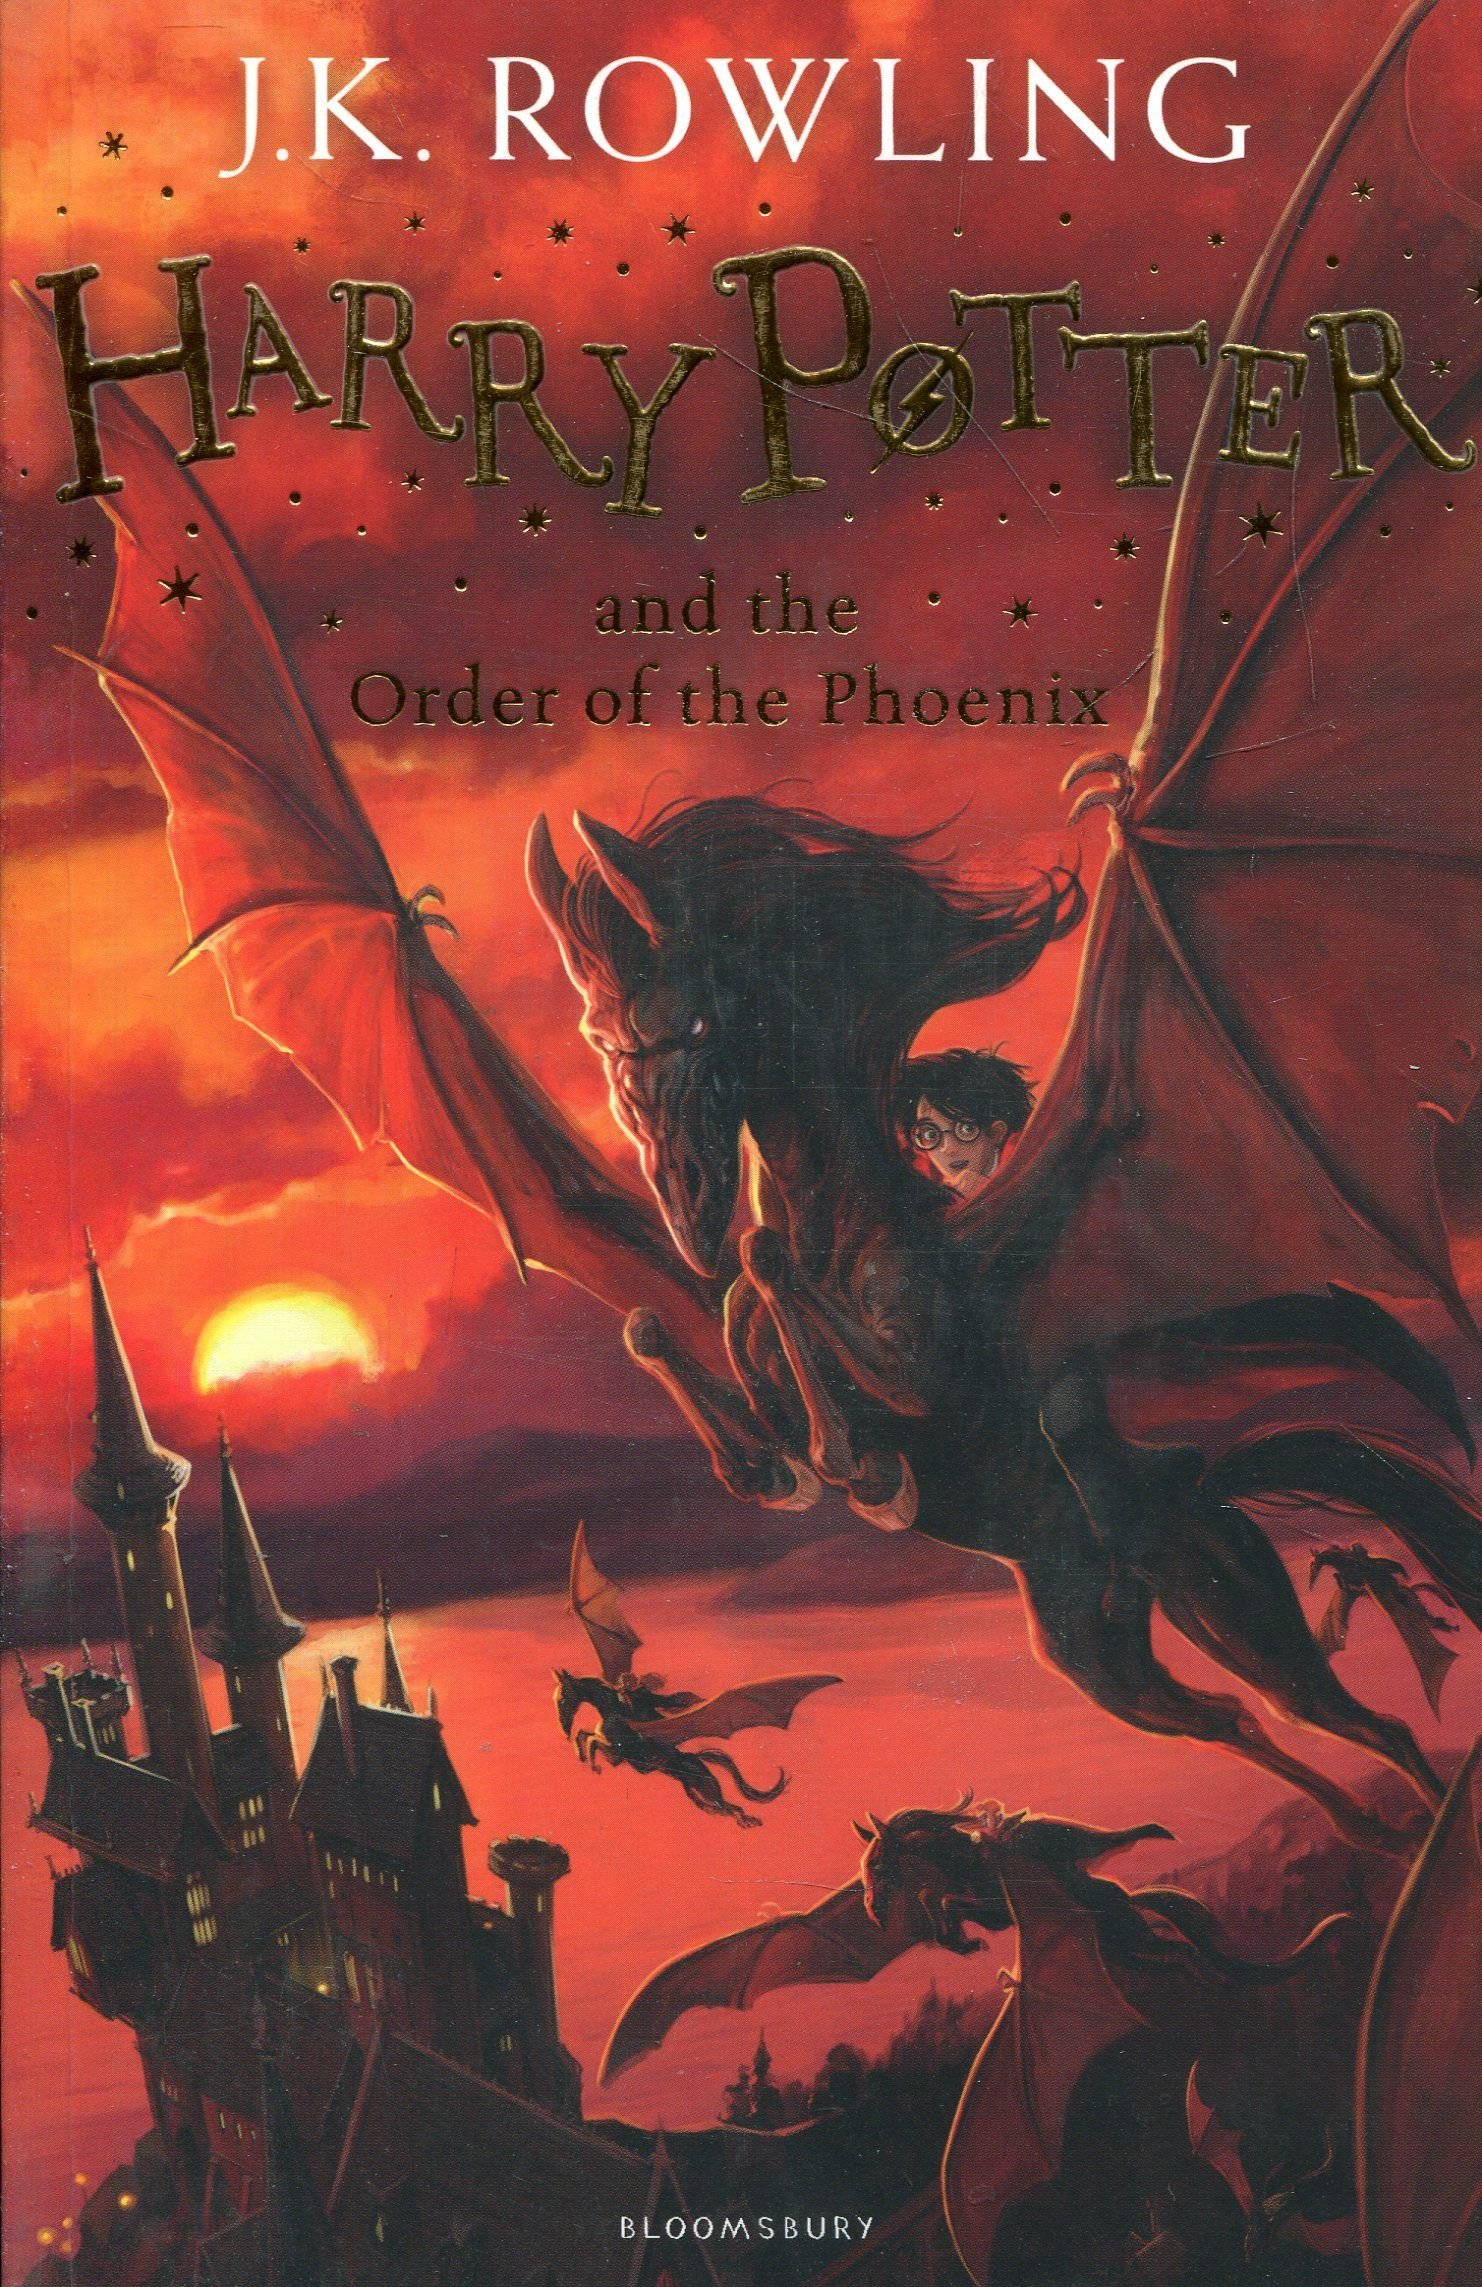 Harry Potter and the Order of the Phoenix: 5/7 Copertina flessibile – 1 set 2014 J.K. Rowling 1408855690 Interest age: from c 9 years Fantasy